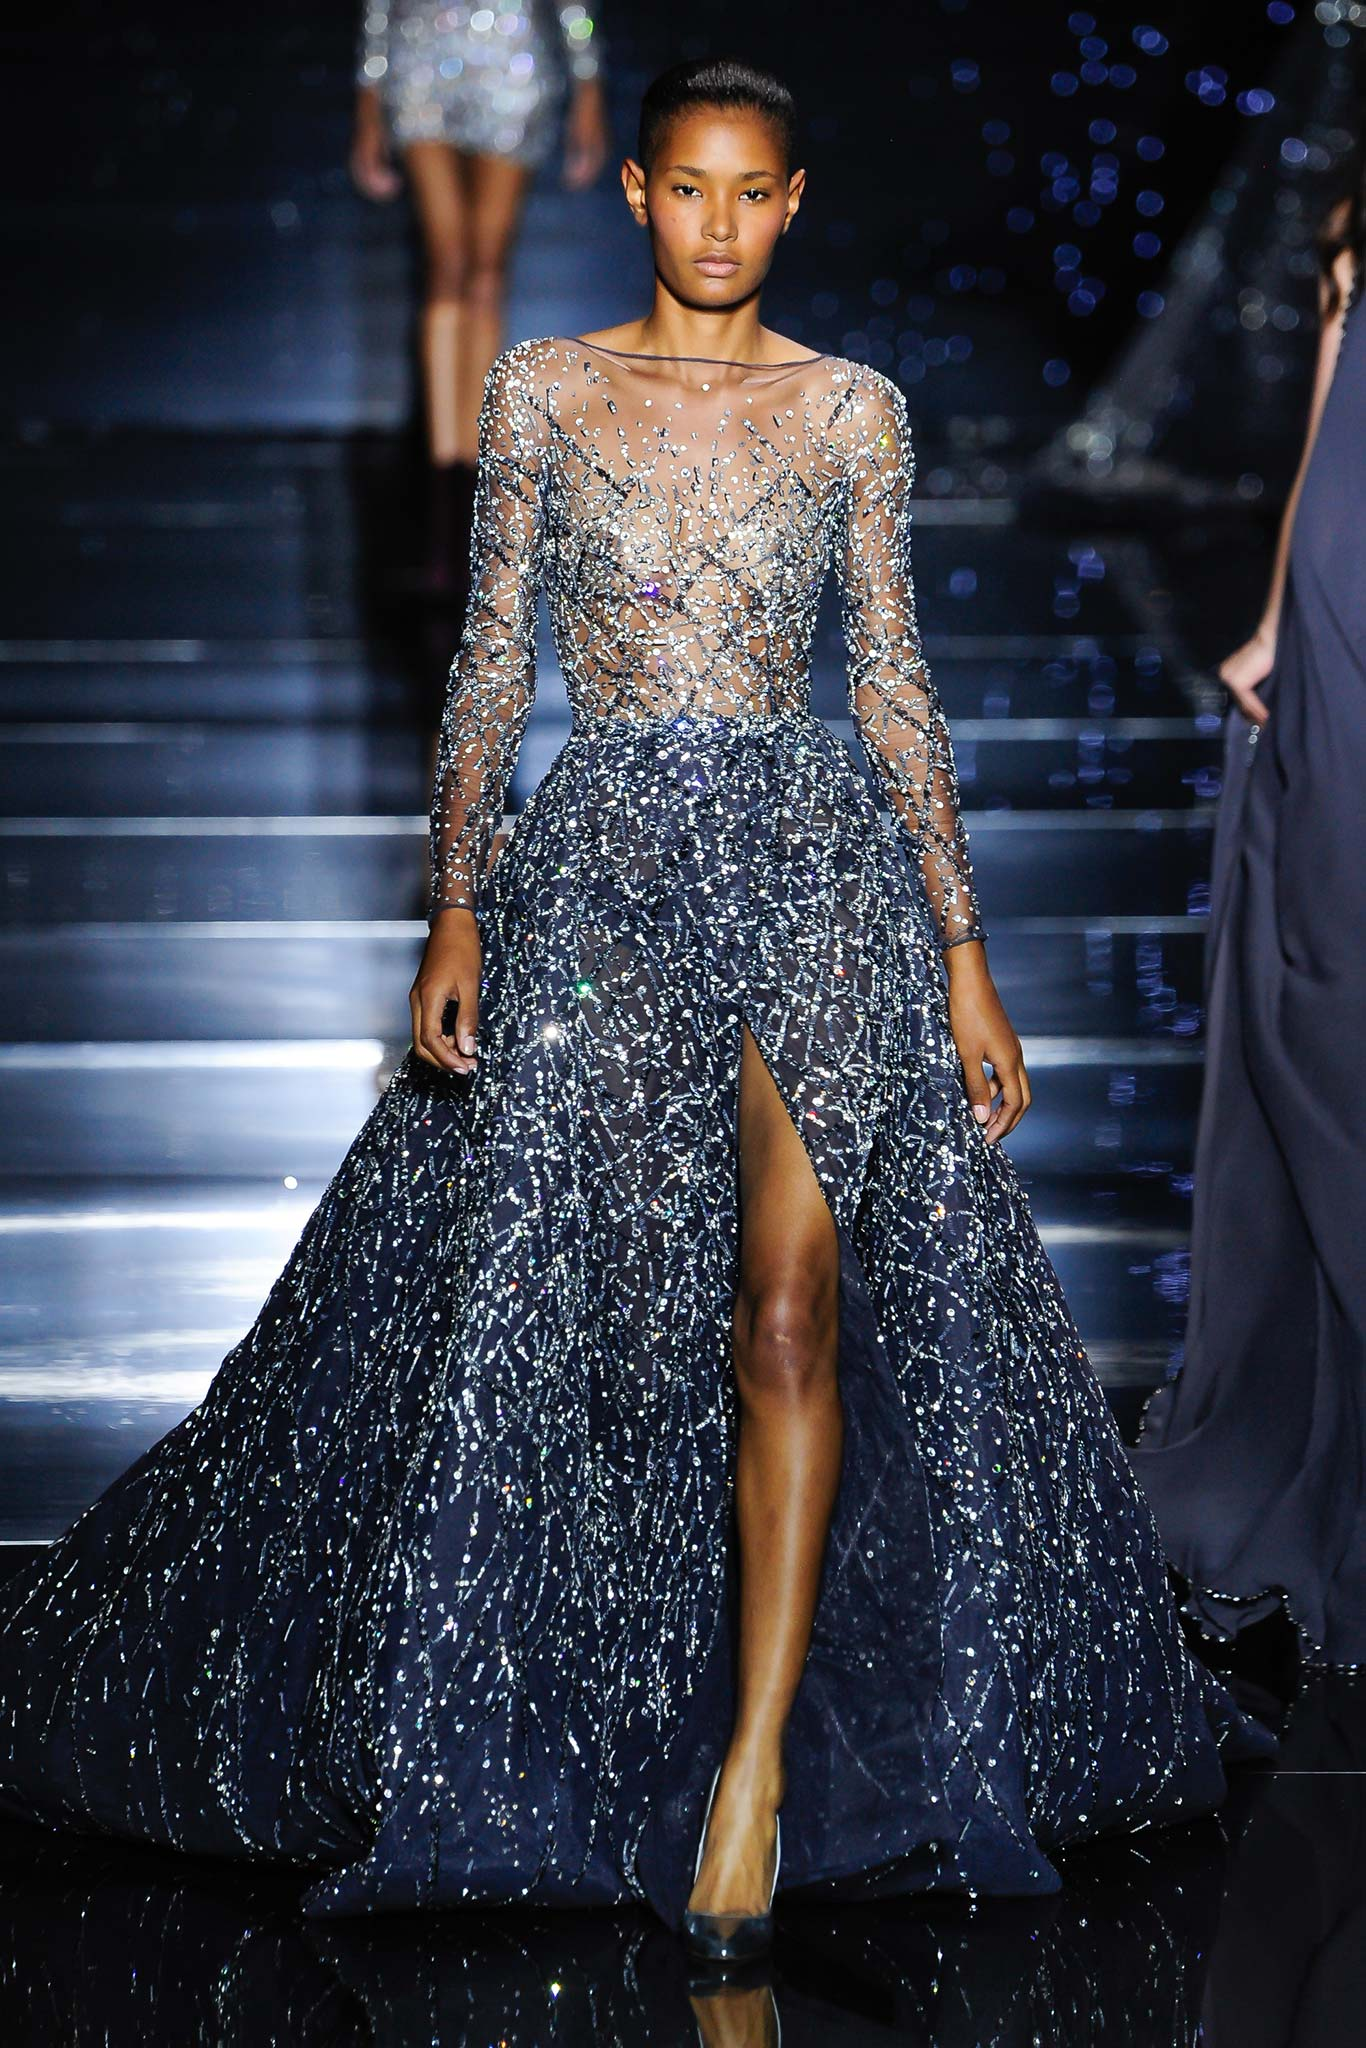 Zuhair murad haute couture f w 2015 paris graveravens for Hot couture fashion